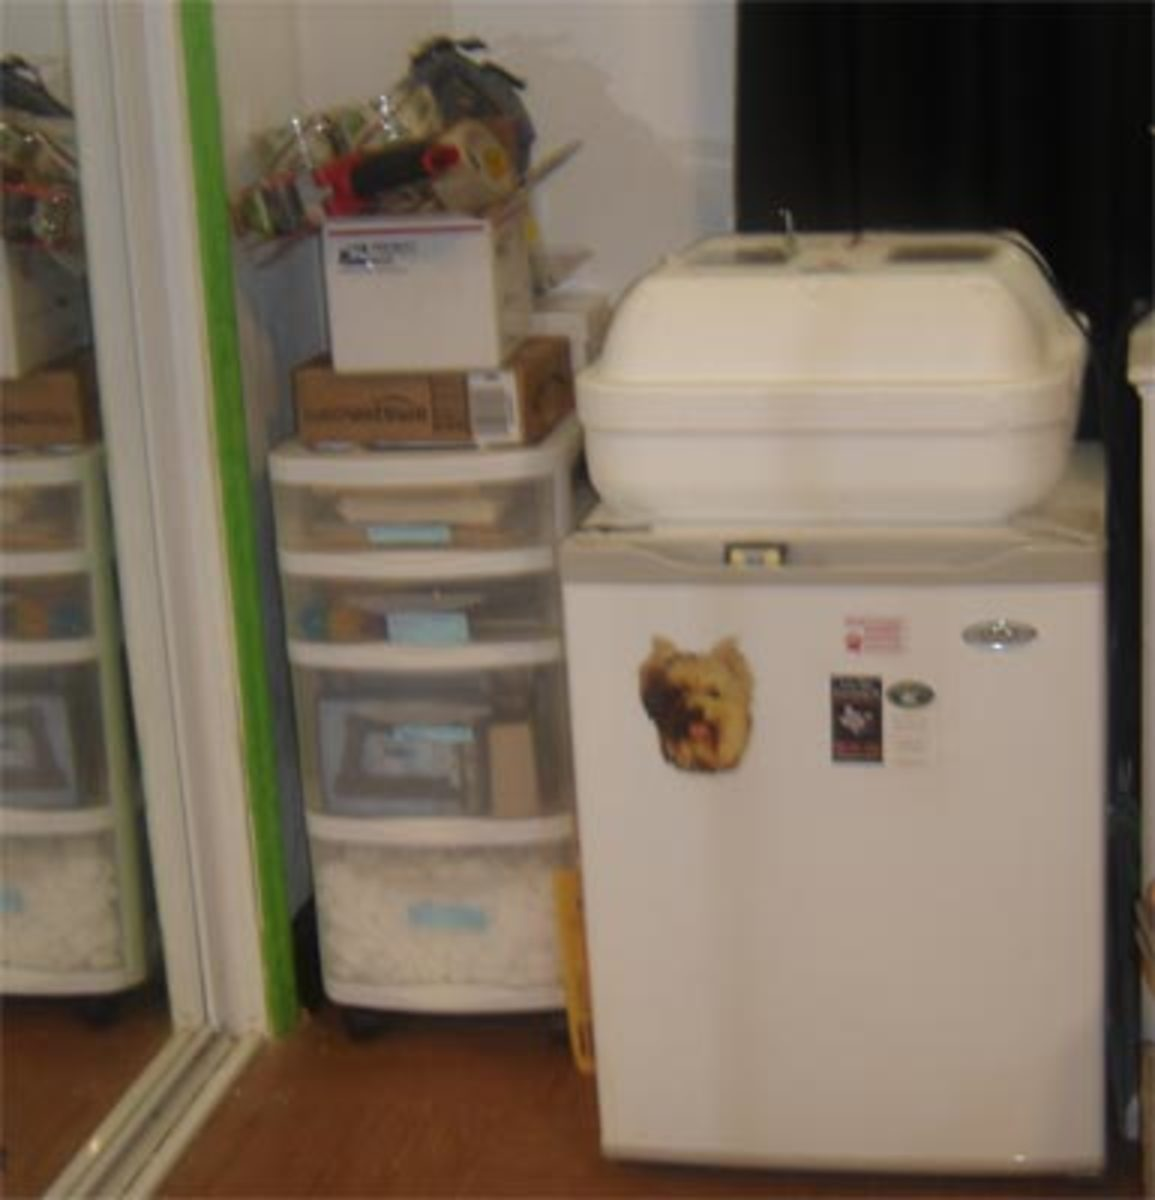 Mini- Fridge to house open baby foom, mealworms, frozen mice, etc.; incubator; packing supplies to left.